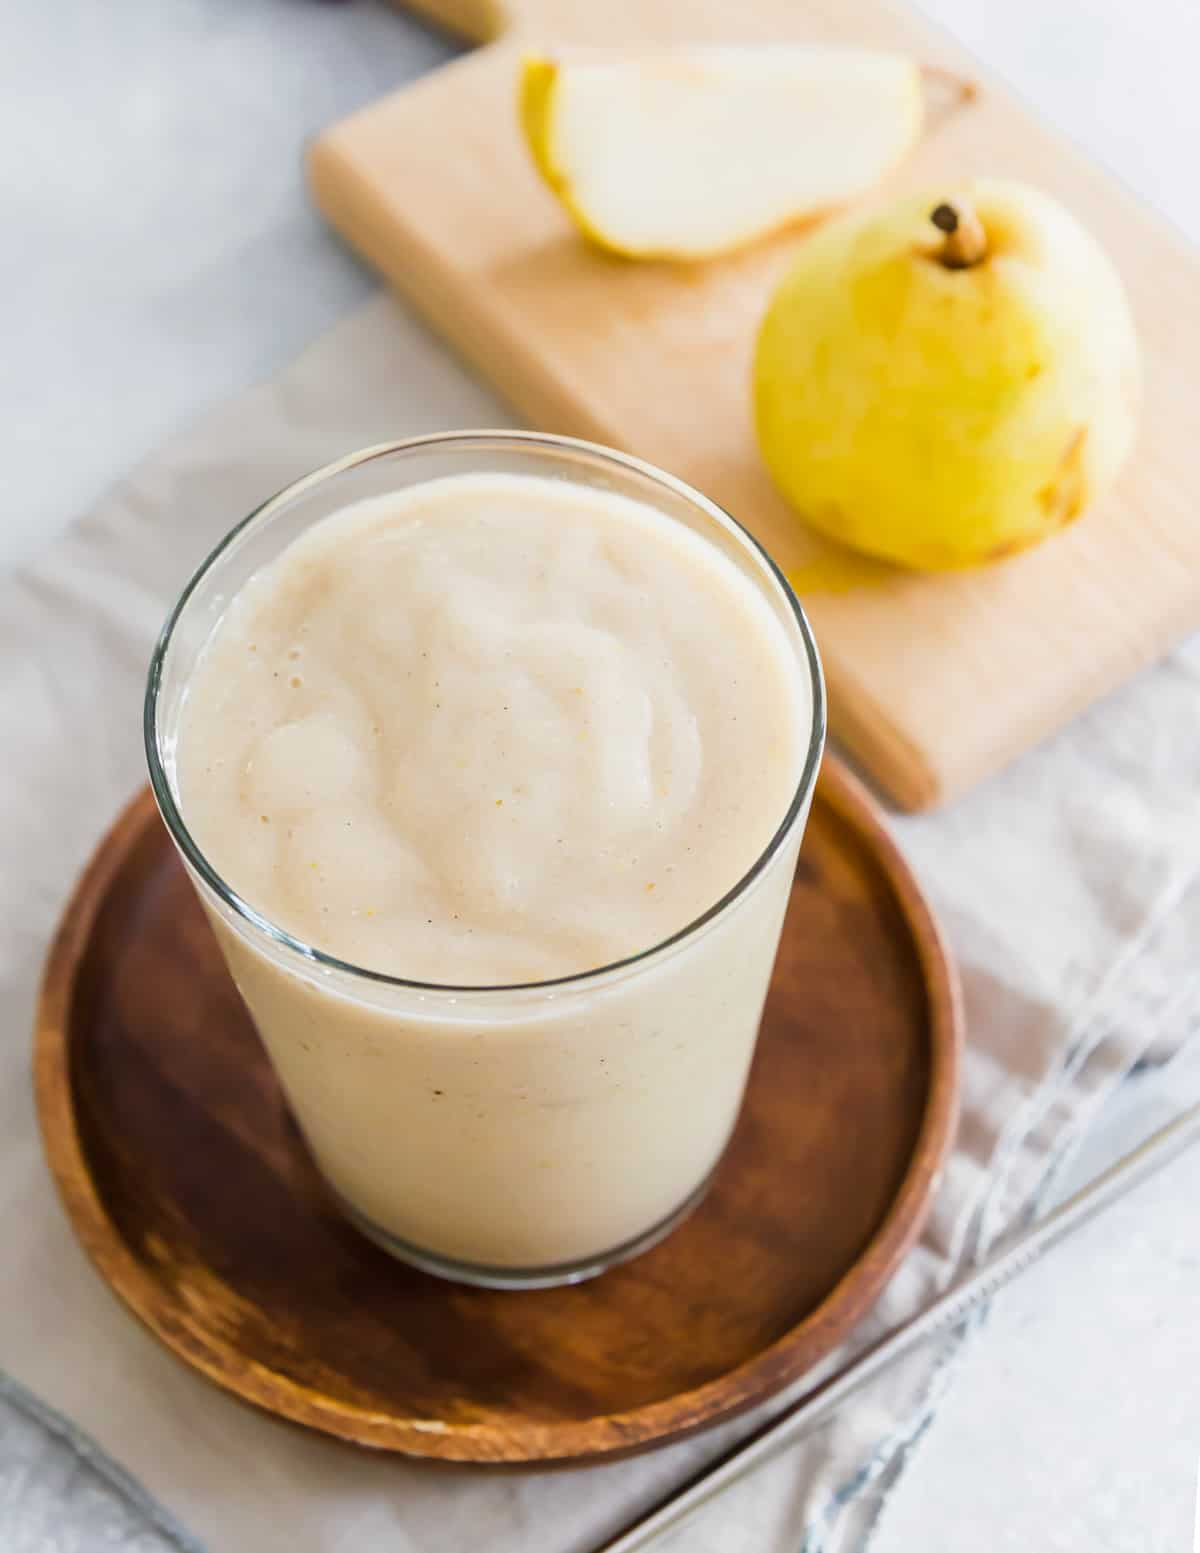 This easy pear smoothie is flavored with banana and cinnamon. It's a healthy, high protein snack or breakfast you can make in minutes with just a handful of ingredients.